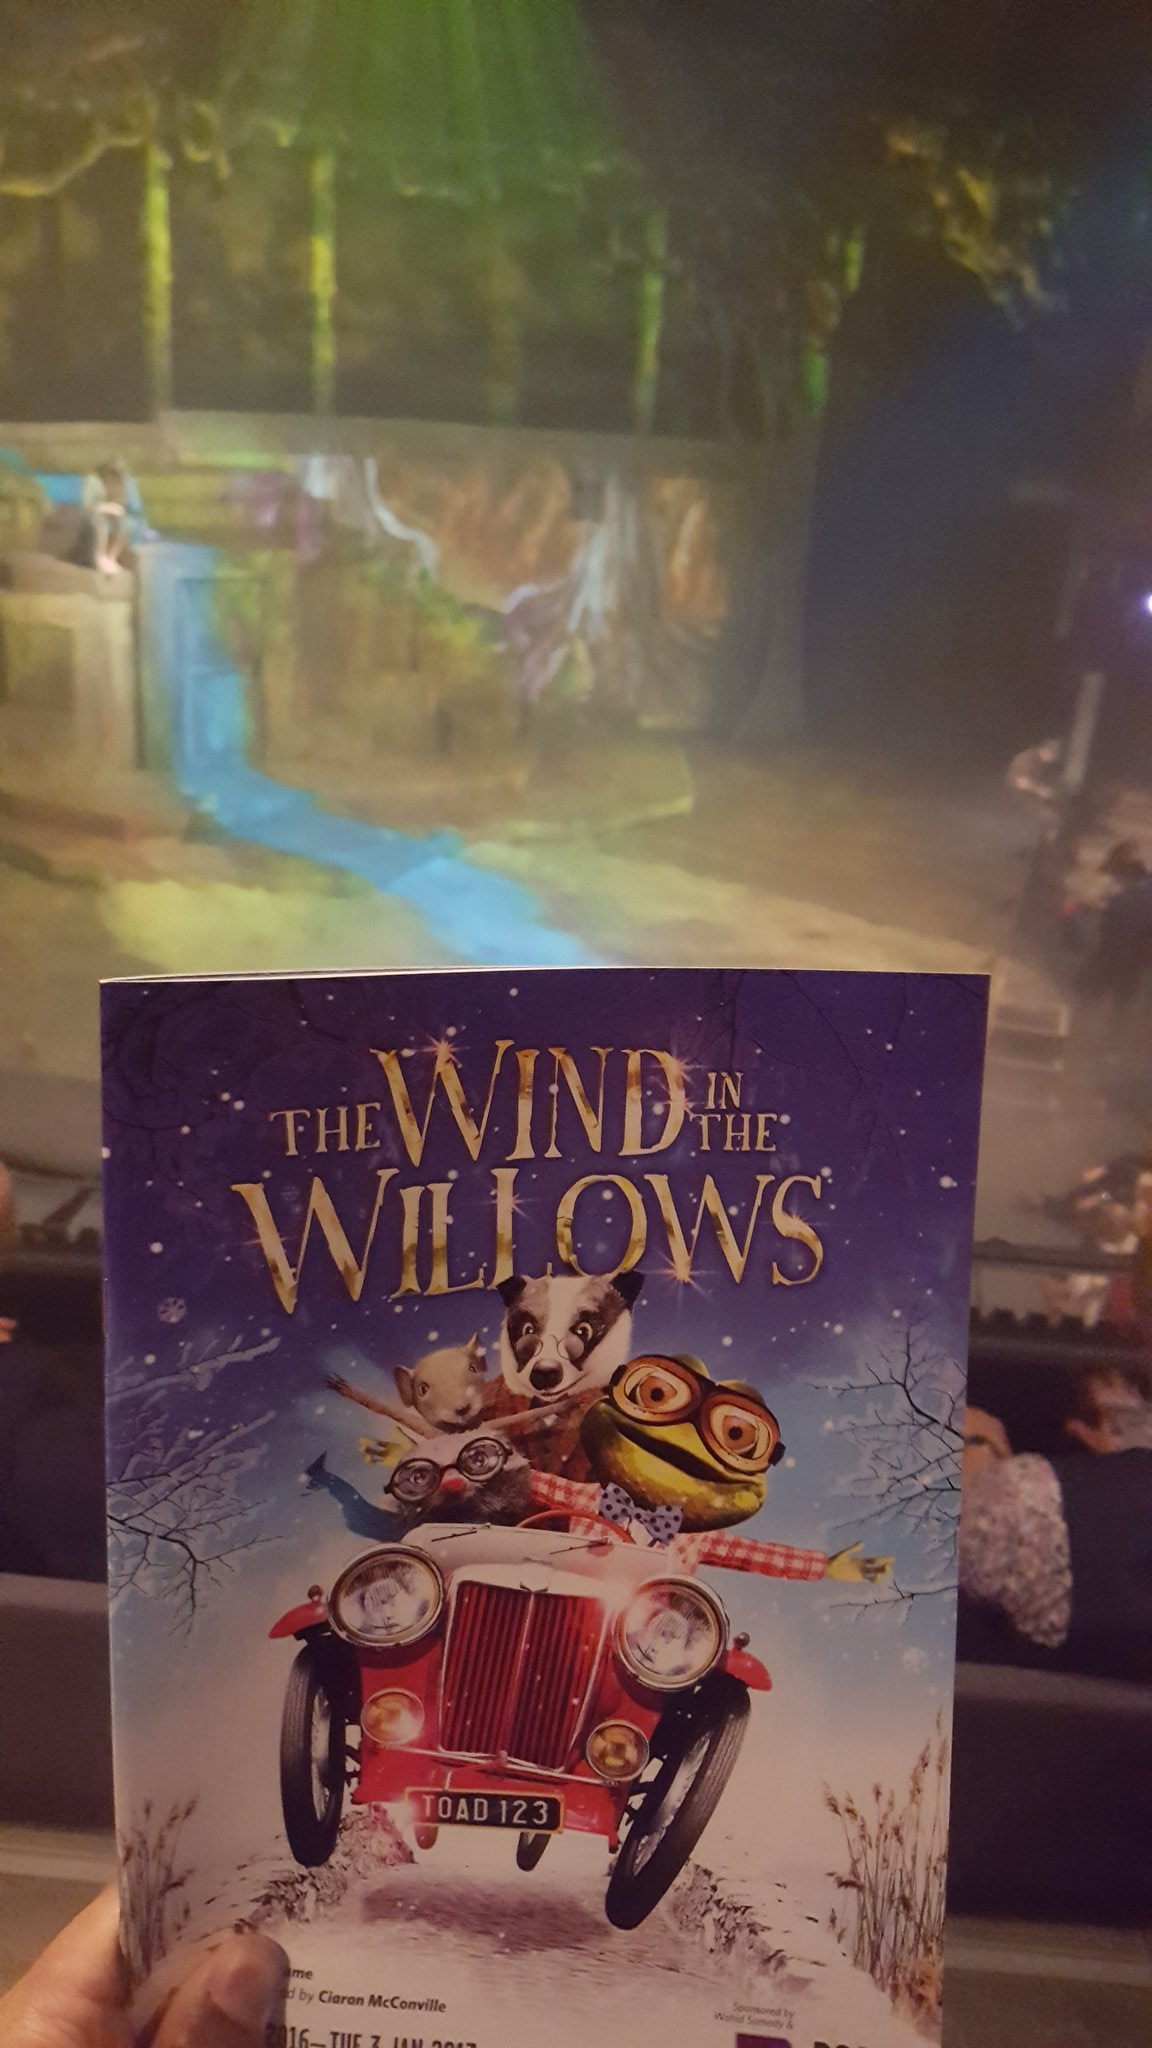 Press night of #windinthewillows @Rosetheatre with @angellicabell. #Christmasplay https://t.co/wpE8nGmcQJ